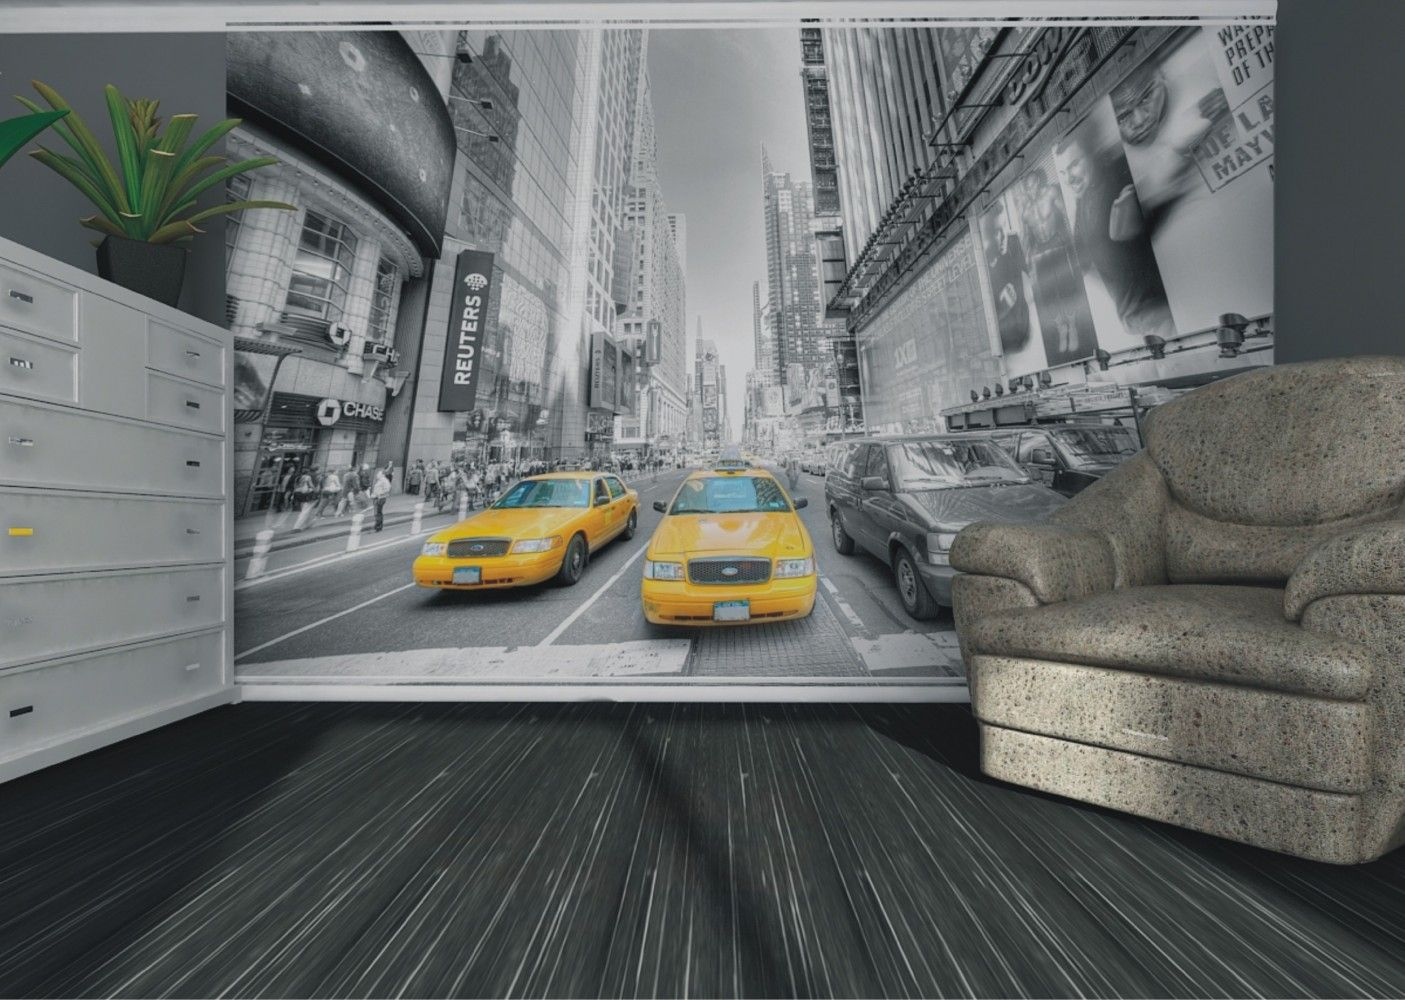 Wall mural wallpaper New York taxi Yellow Cap Manhattan NYC photo